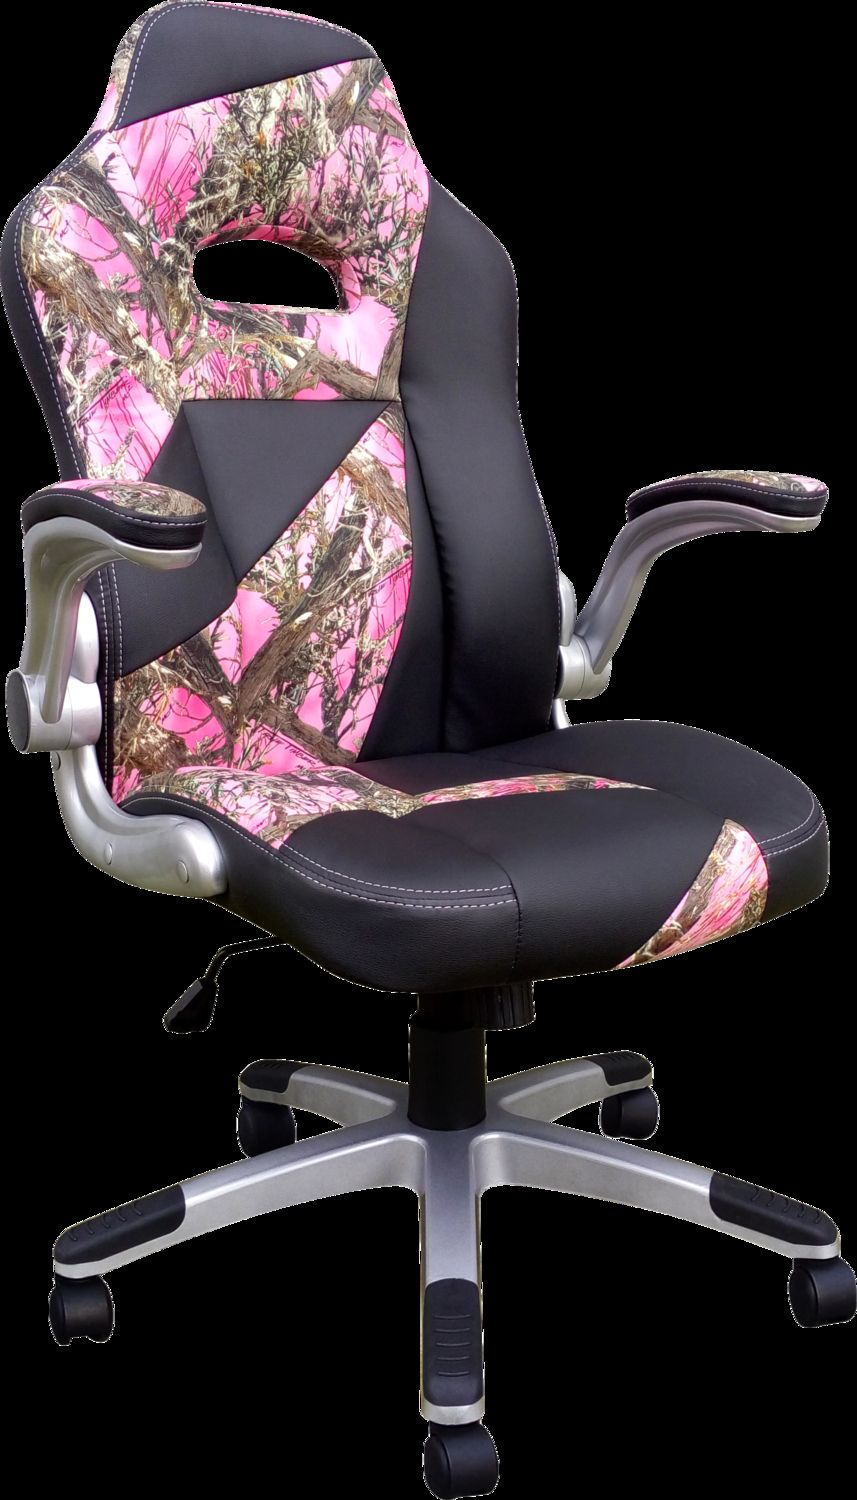 Pink Camo Office Chair Office chair, Office desk chair